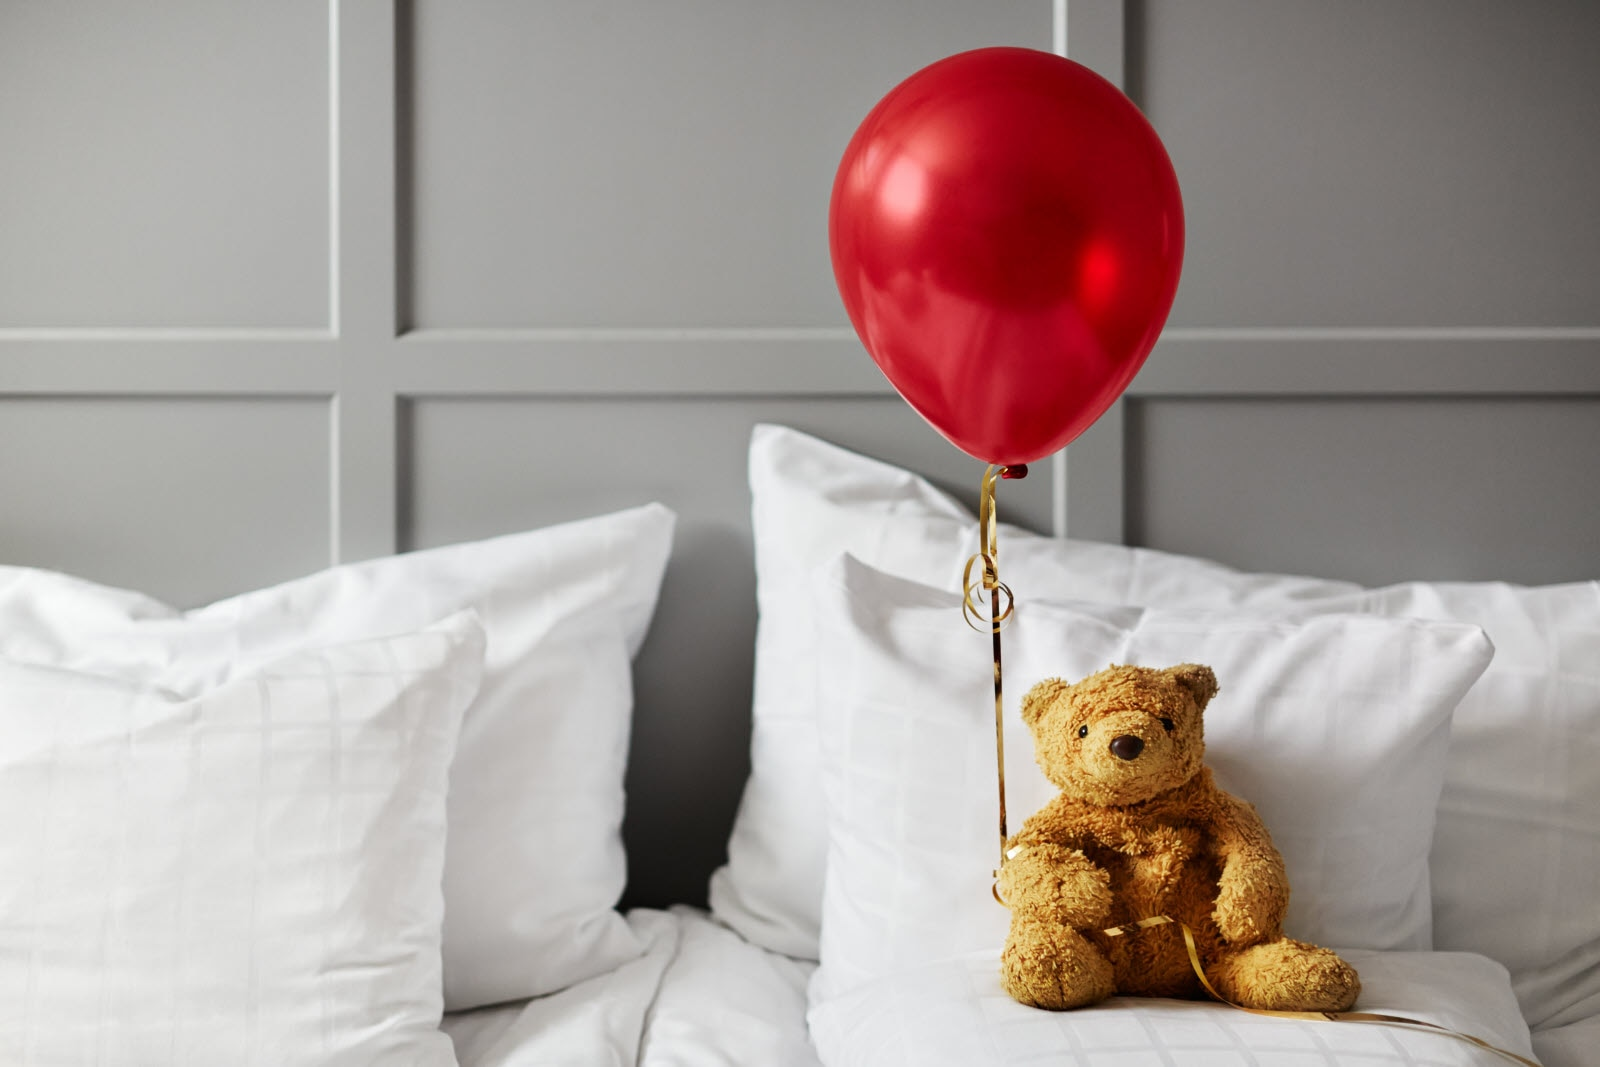 ccc, spring 2014, Grand Central, Scandic in society, kids, ballon, bed, nalle, teddy bear, kids, min stora dag, CSR, animal